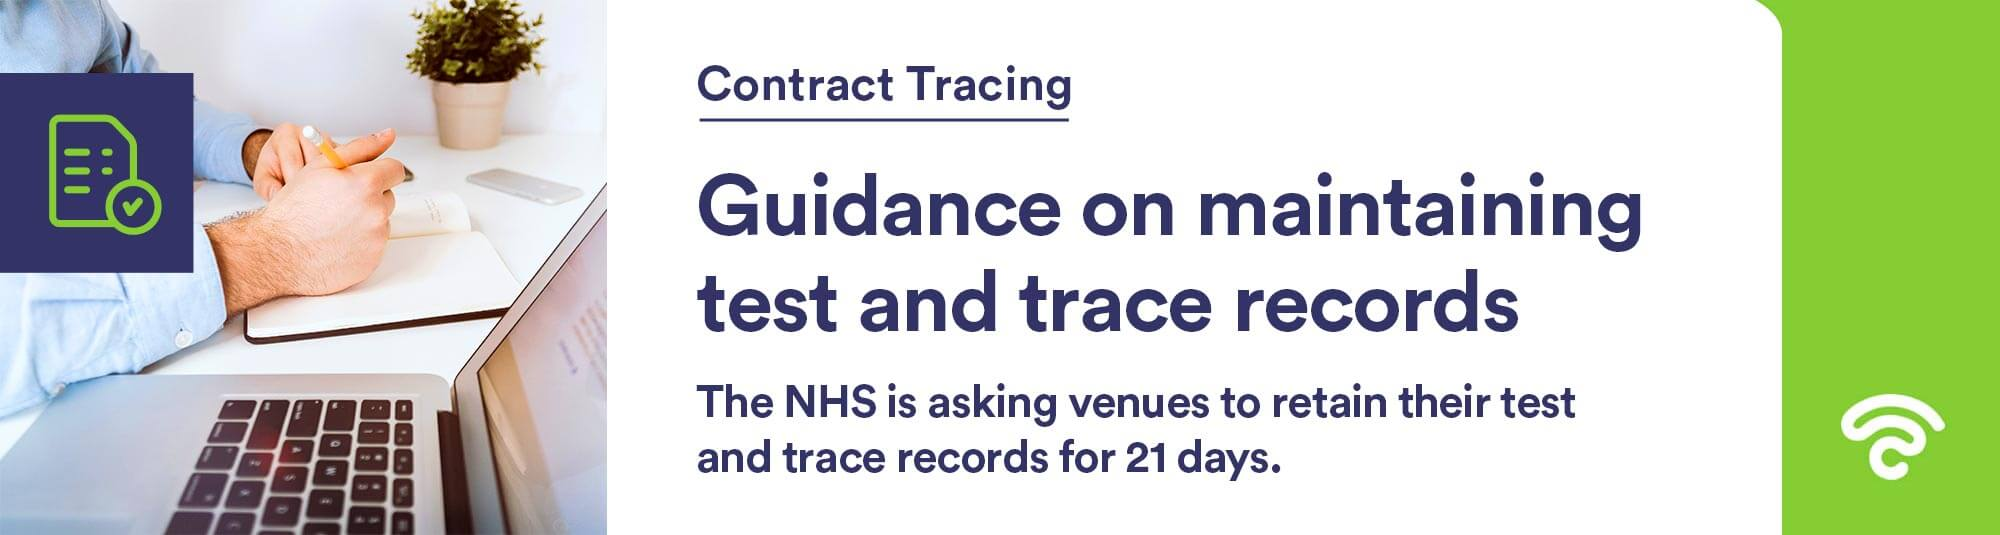 how to keep test and trace records uk